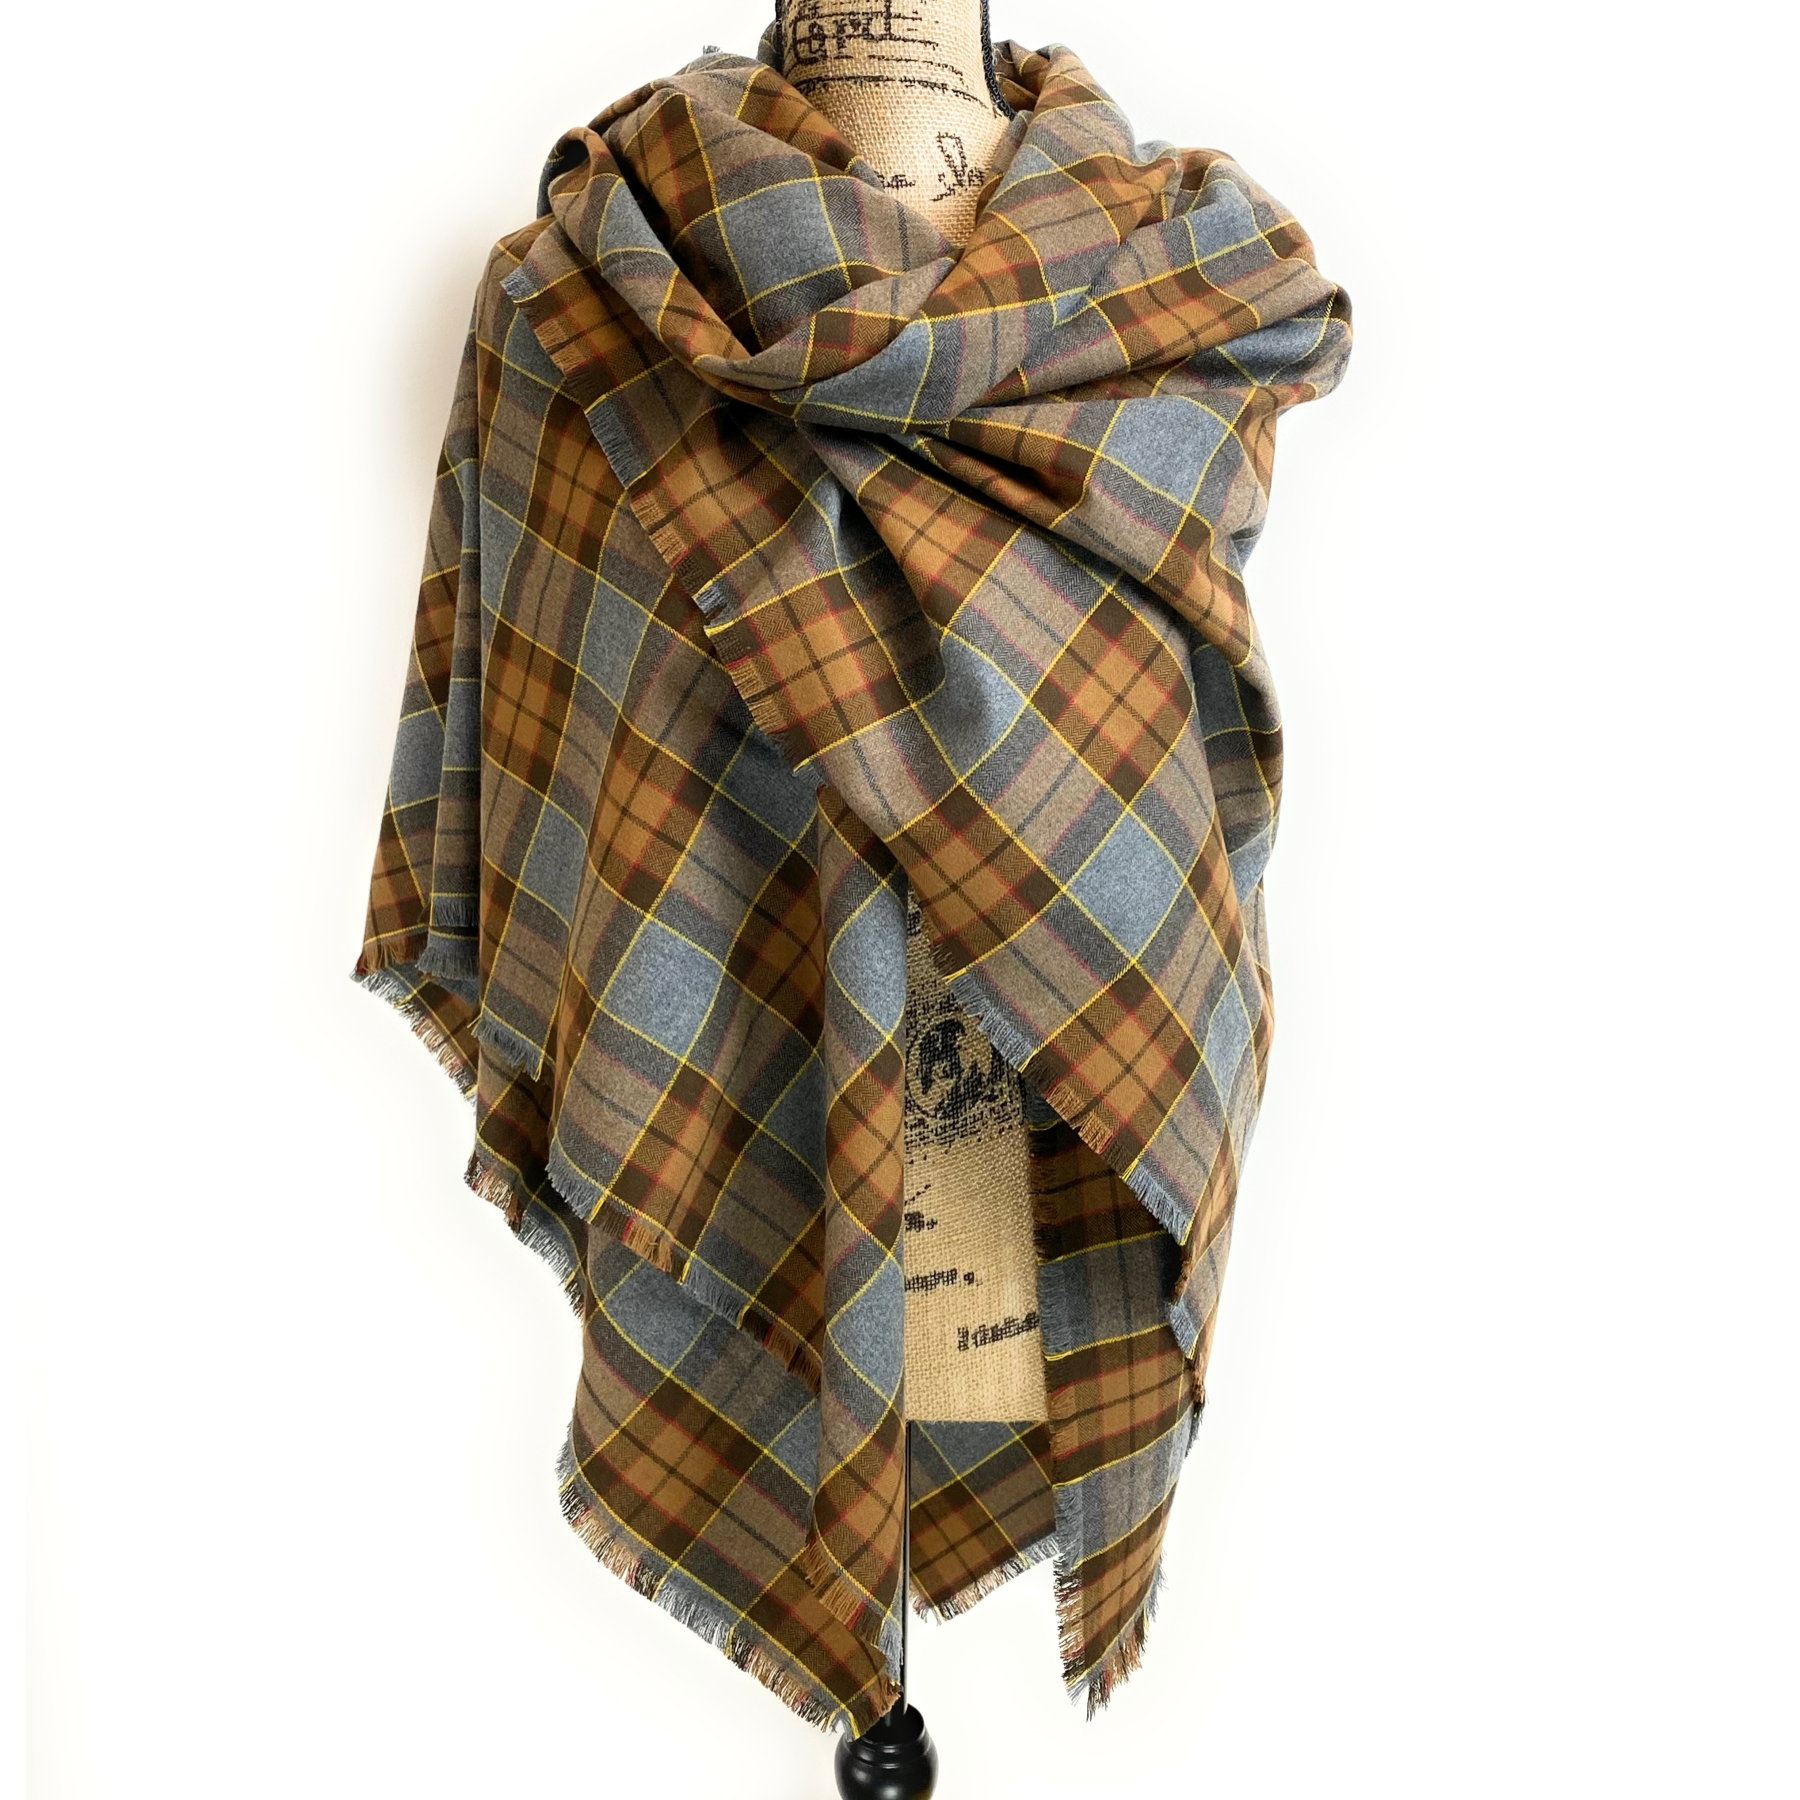 Oversized Blanket Scarf/Earasaid - Outlander Clan Fraser Inspired Gray, Brown, Yellow, and Red Cotton Flannel